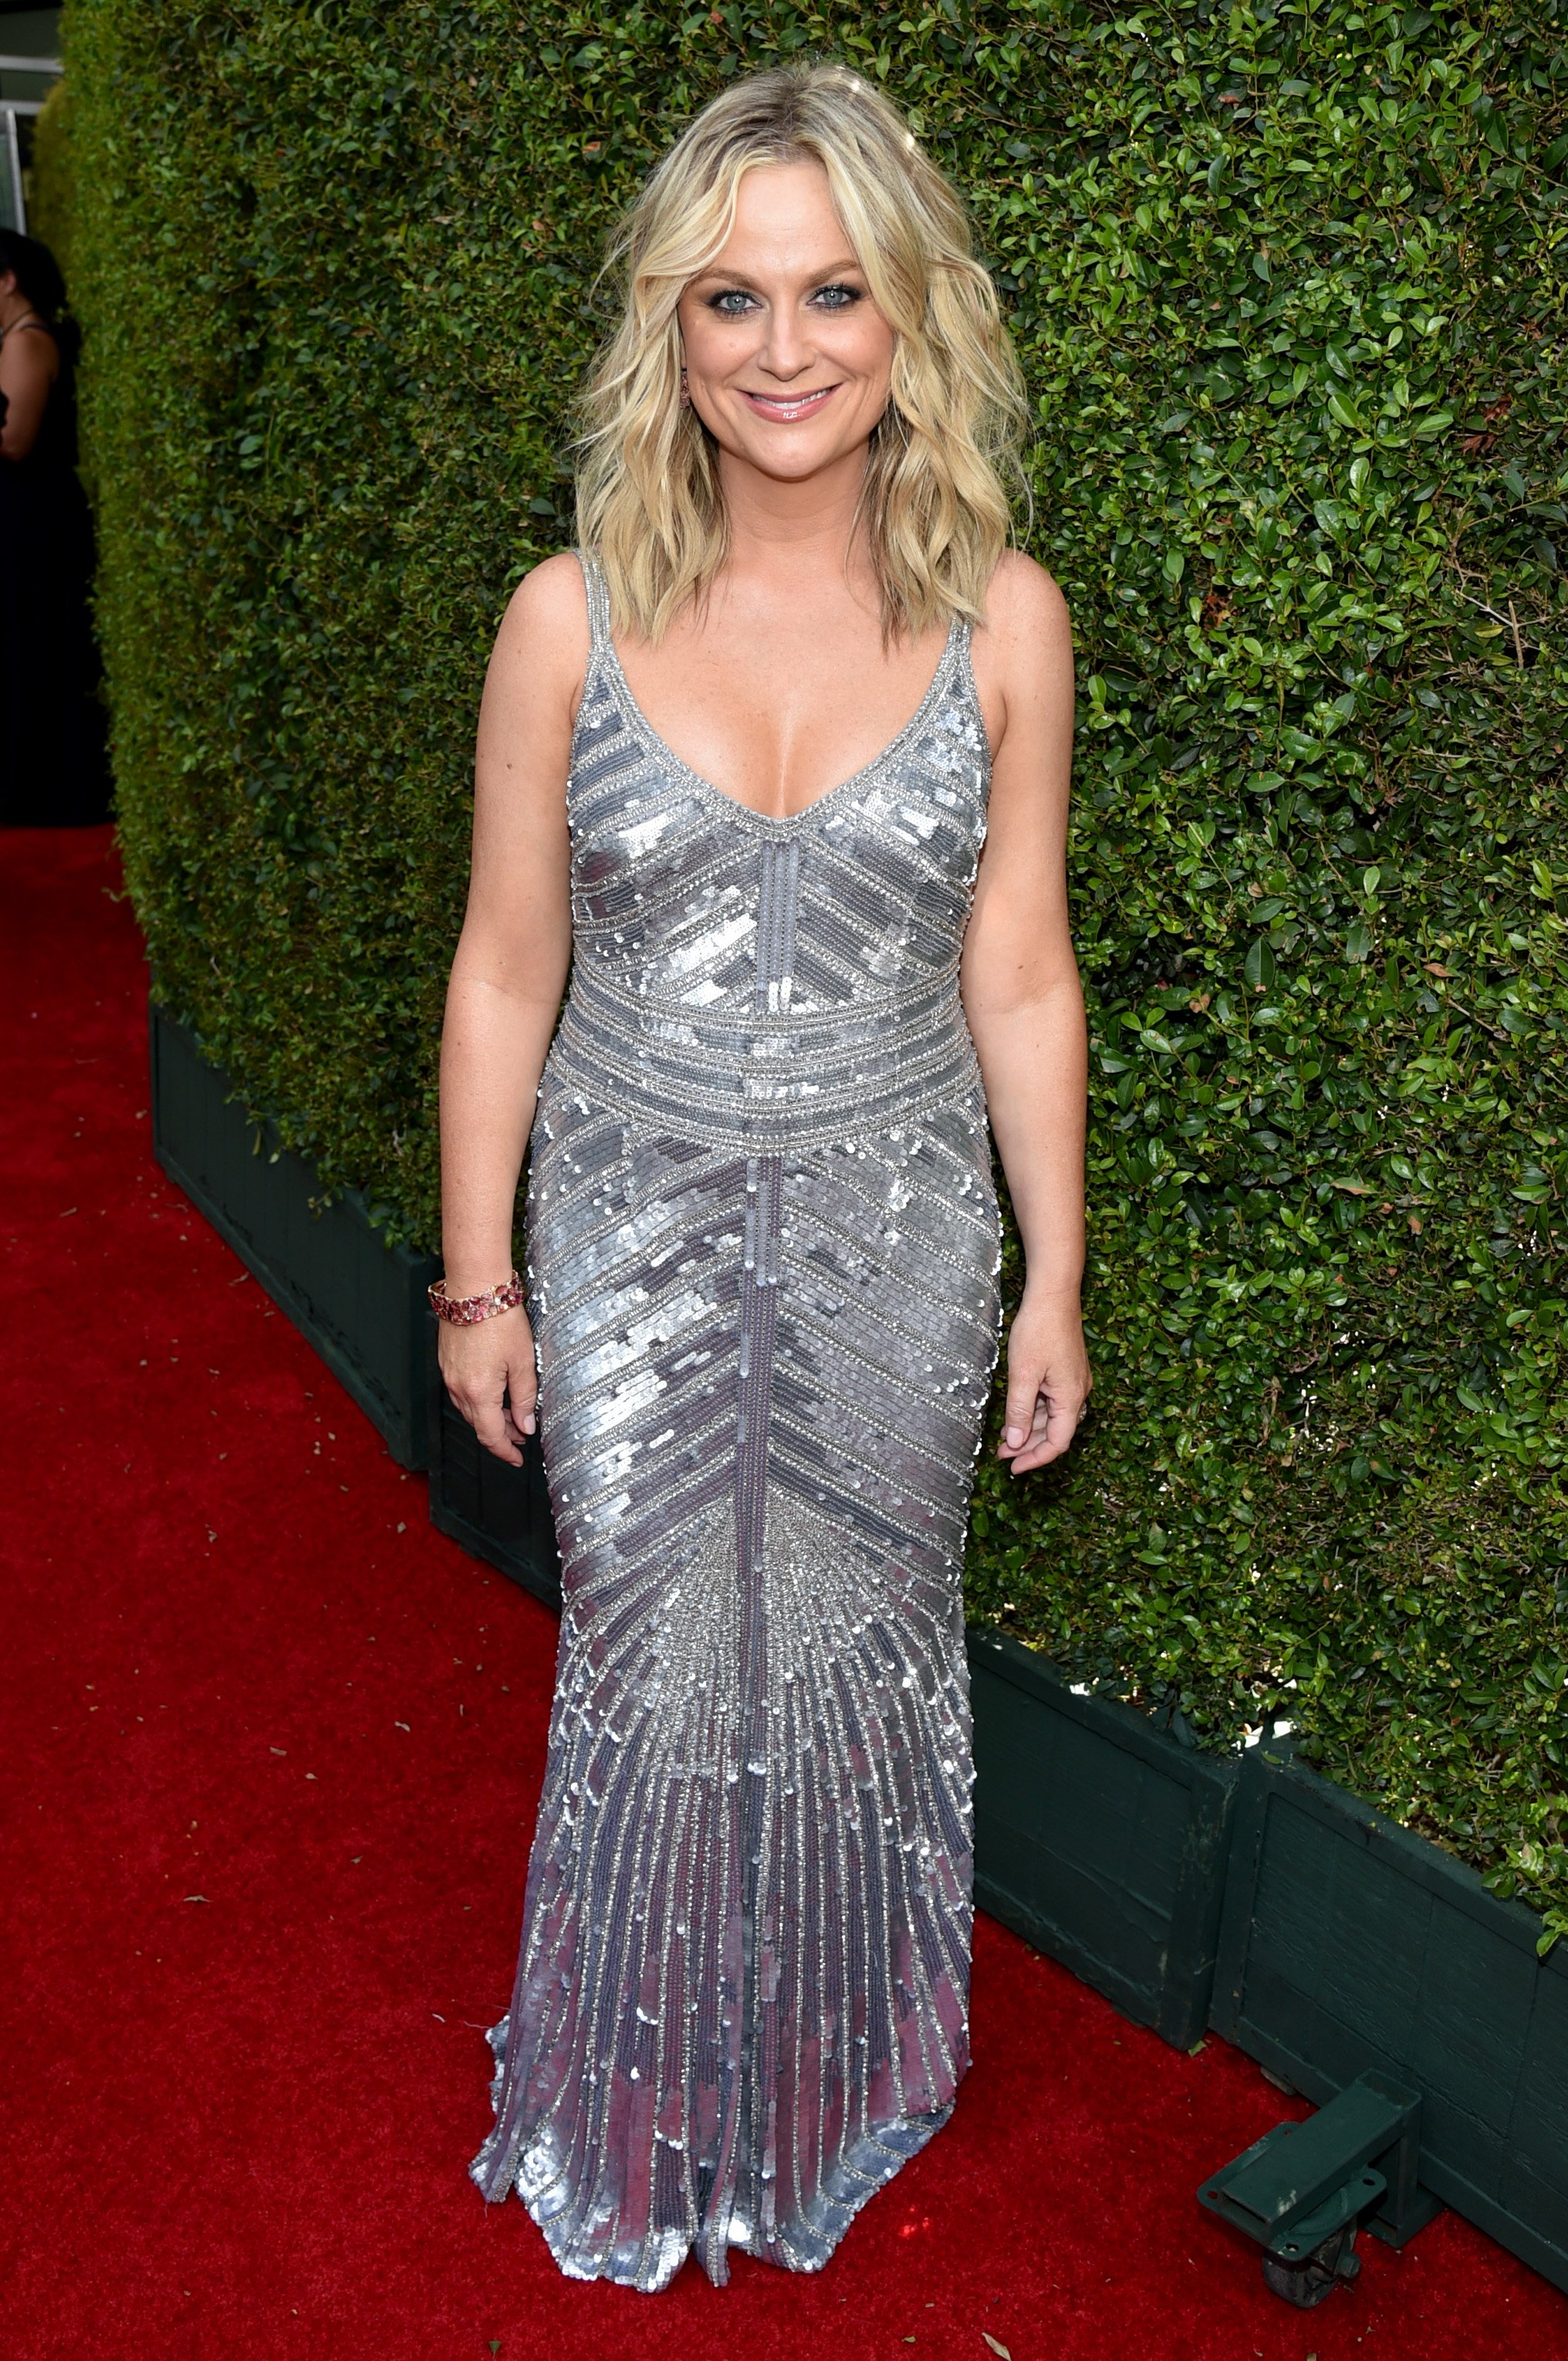 Amy Poehler arrives at the 66th Primetime Emmy Awards at the Nokia Theatre L.A. Live on Monday, Aug. 25, 2014, in Los Angeles.